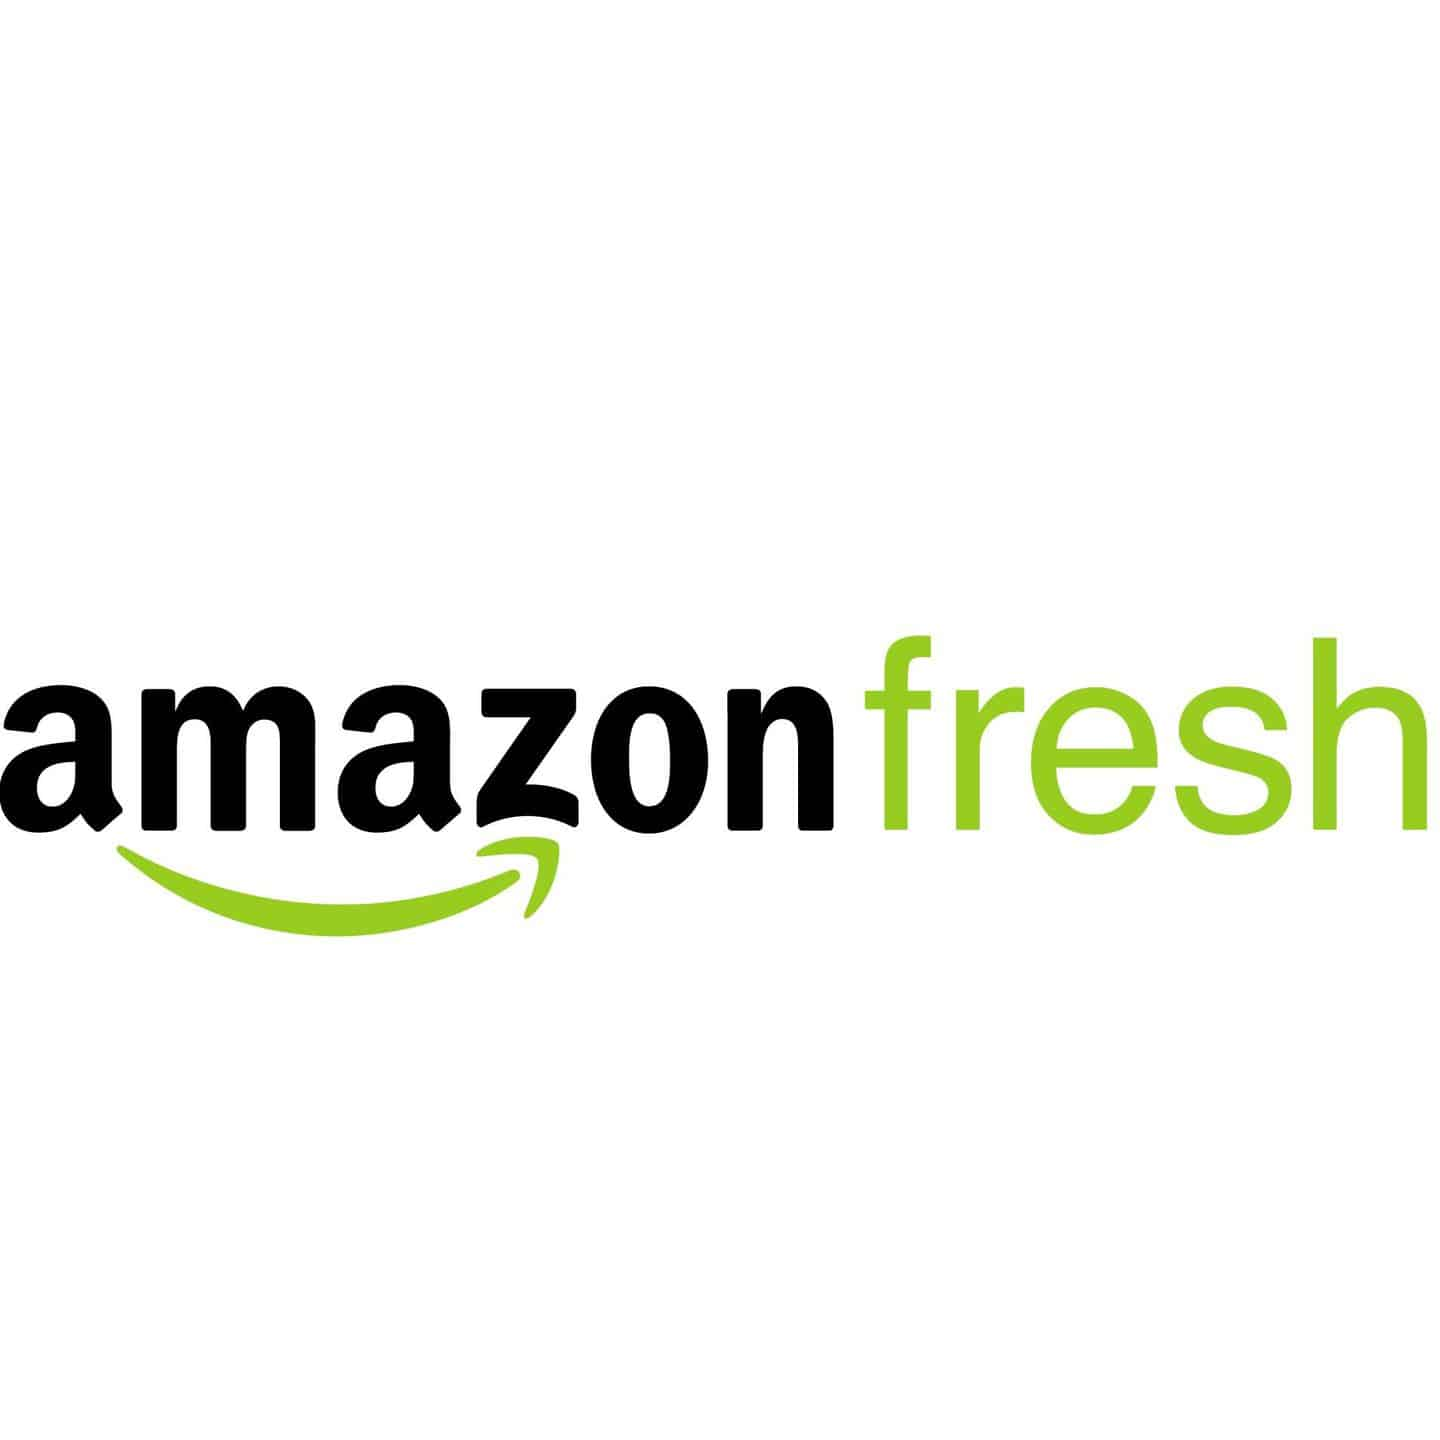 the amazon fresh mobile shopping app offers cheap groceries